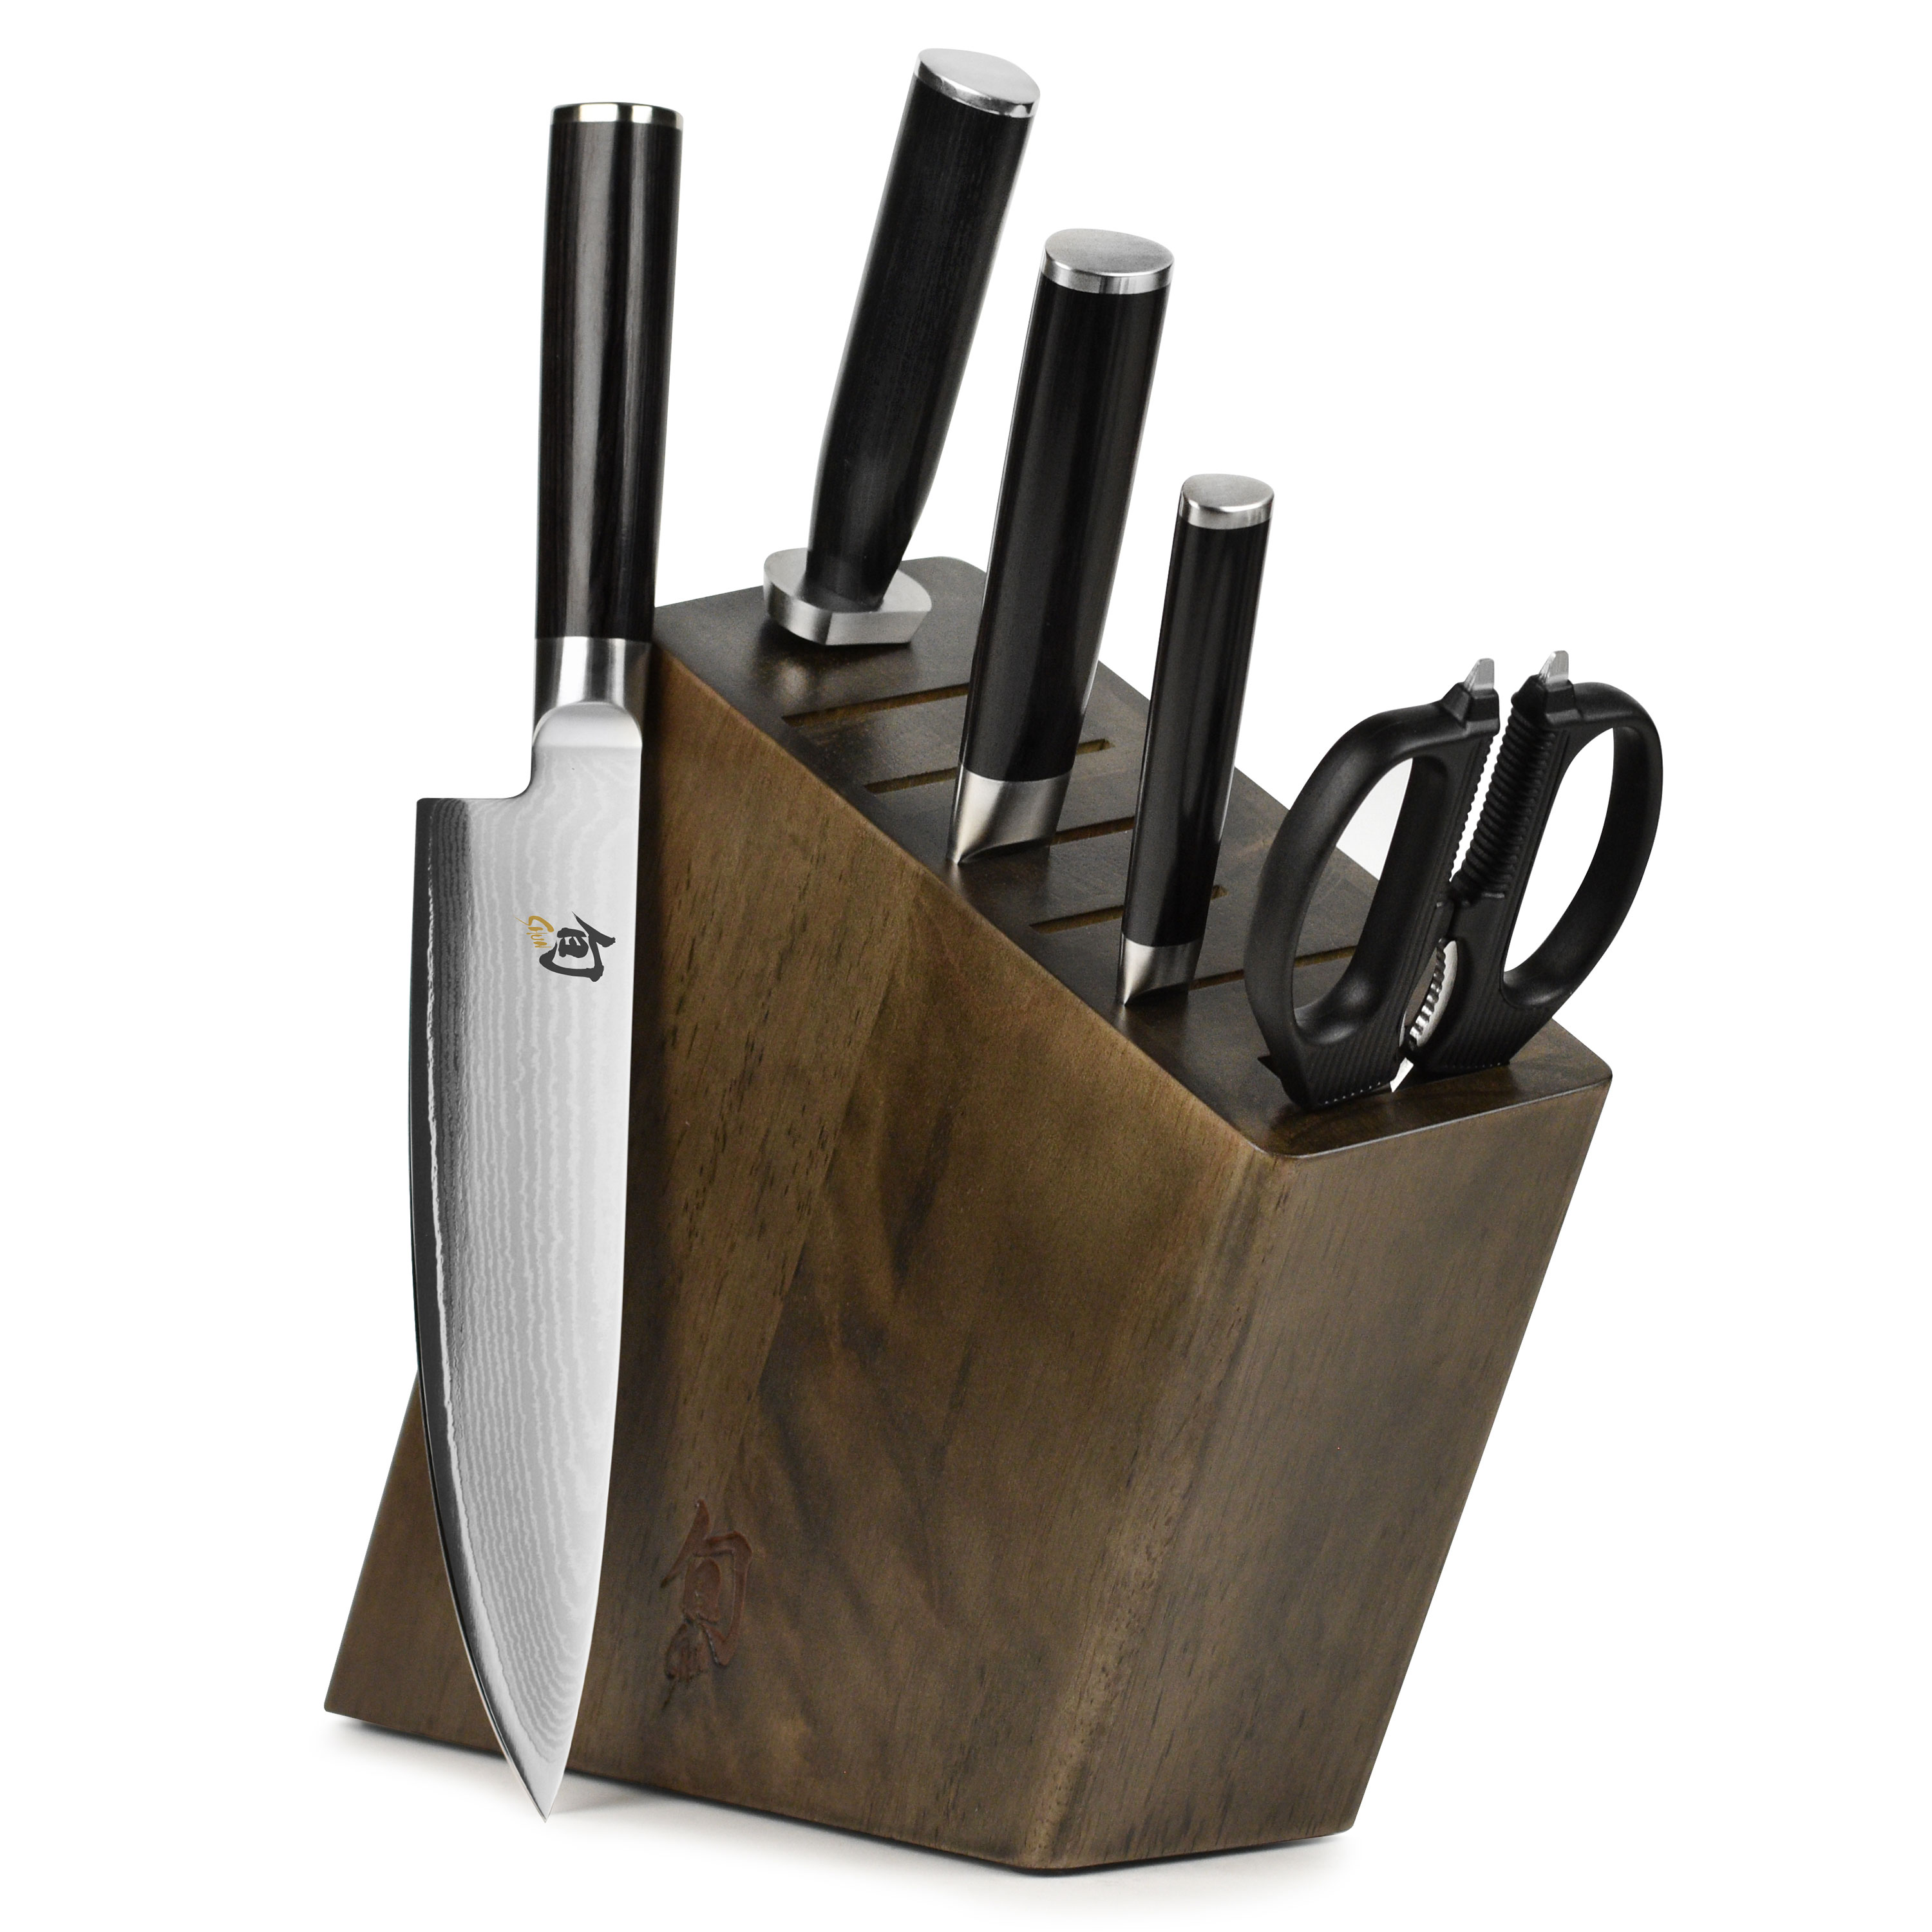 shun classic knife set slim block 7 piece shun chef 39 s knives cutlery and more. Black Bedroom Furniture Sets. Home Design Ideas